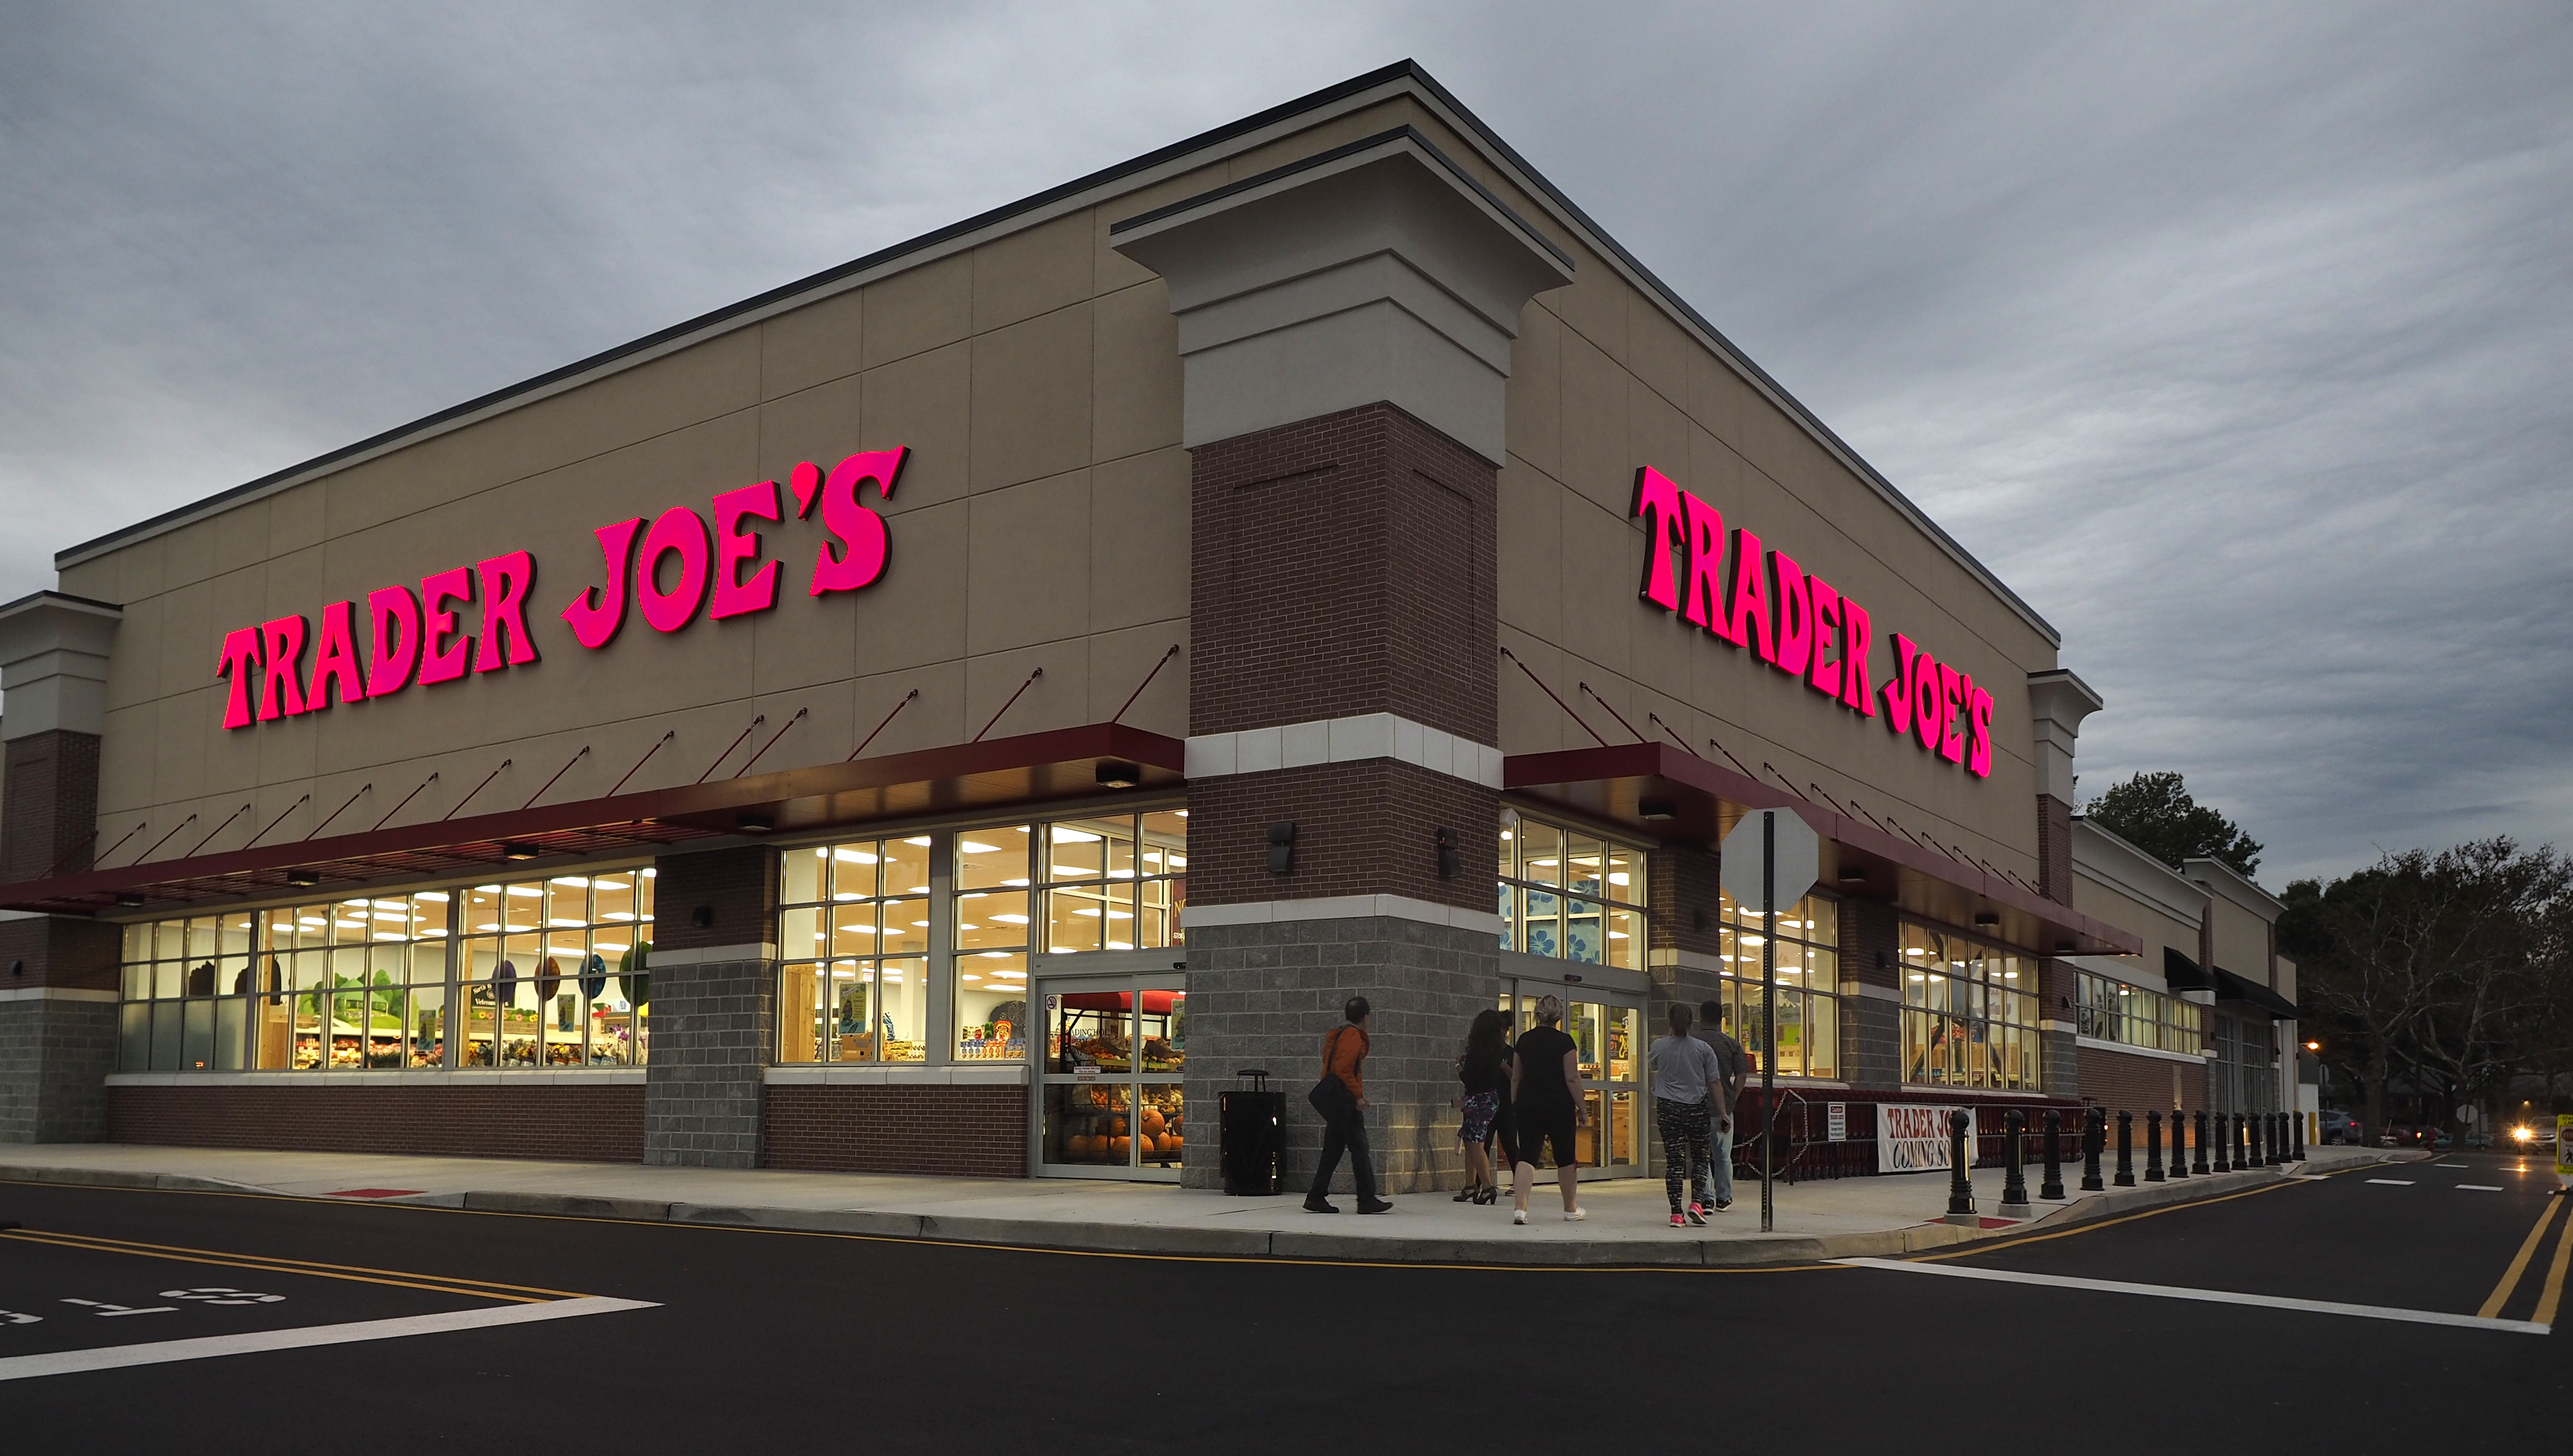 Another Trader Joe's is coming to N.J. That makes 3 new locations in the works.